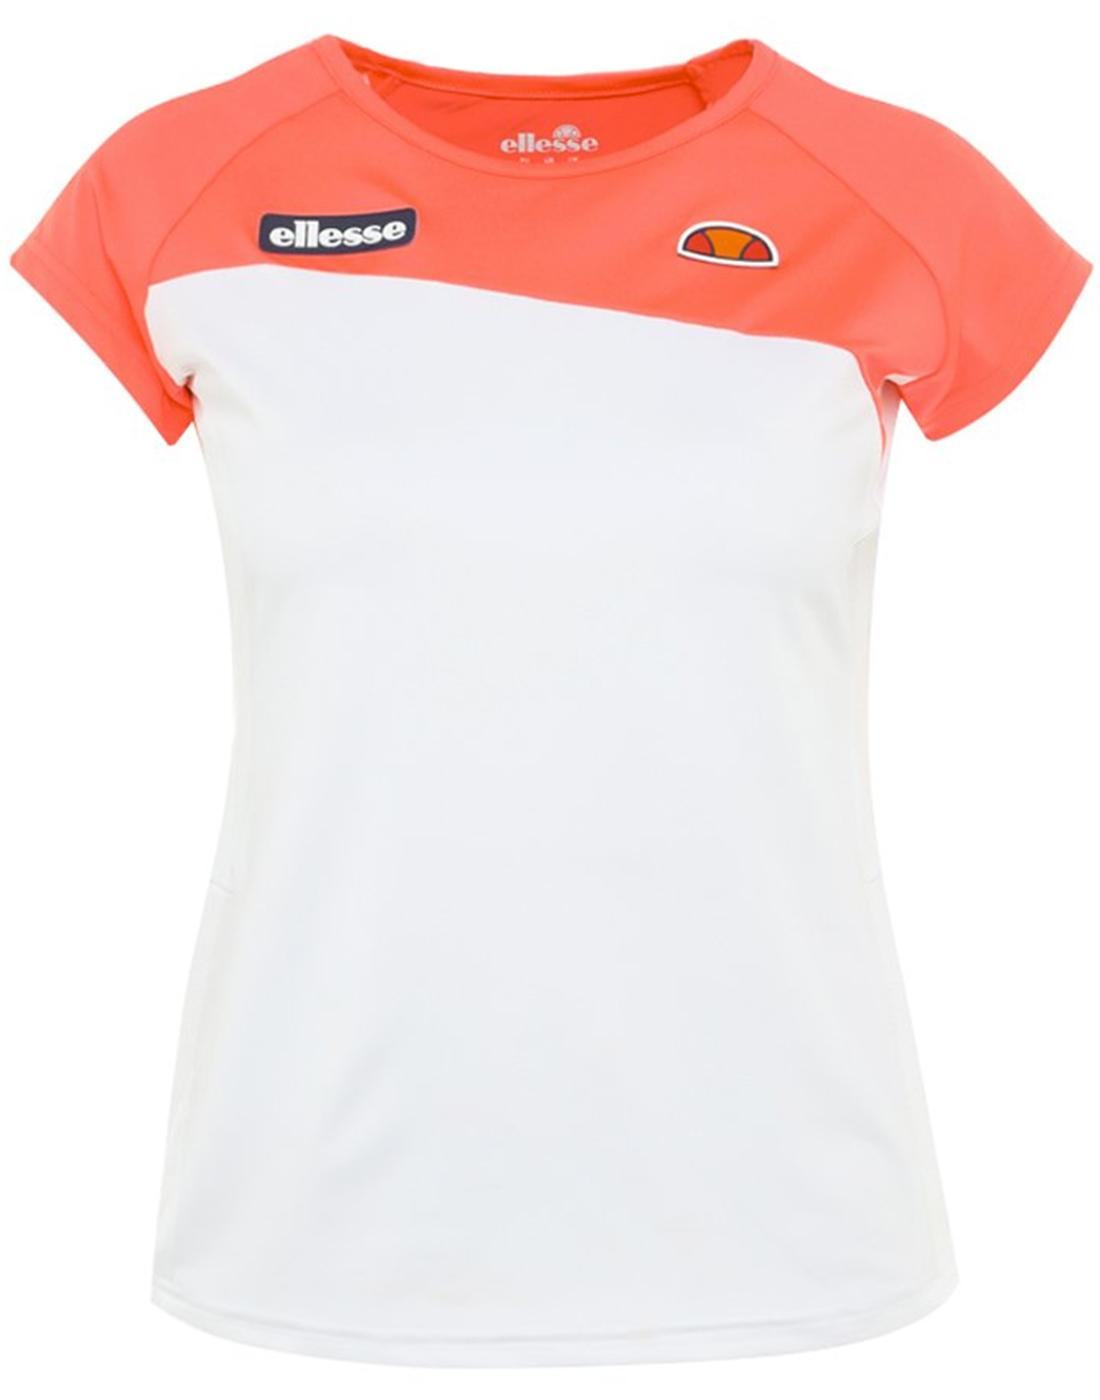 Admiral ELLESSE Womens Retro 70s Fitted Tennis Tee